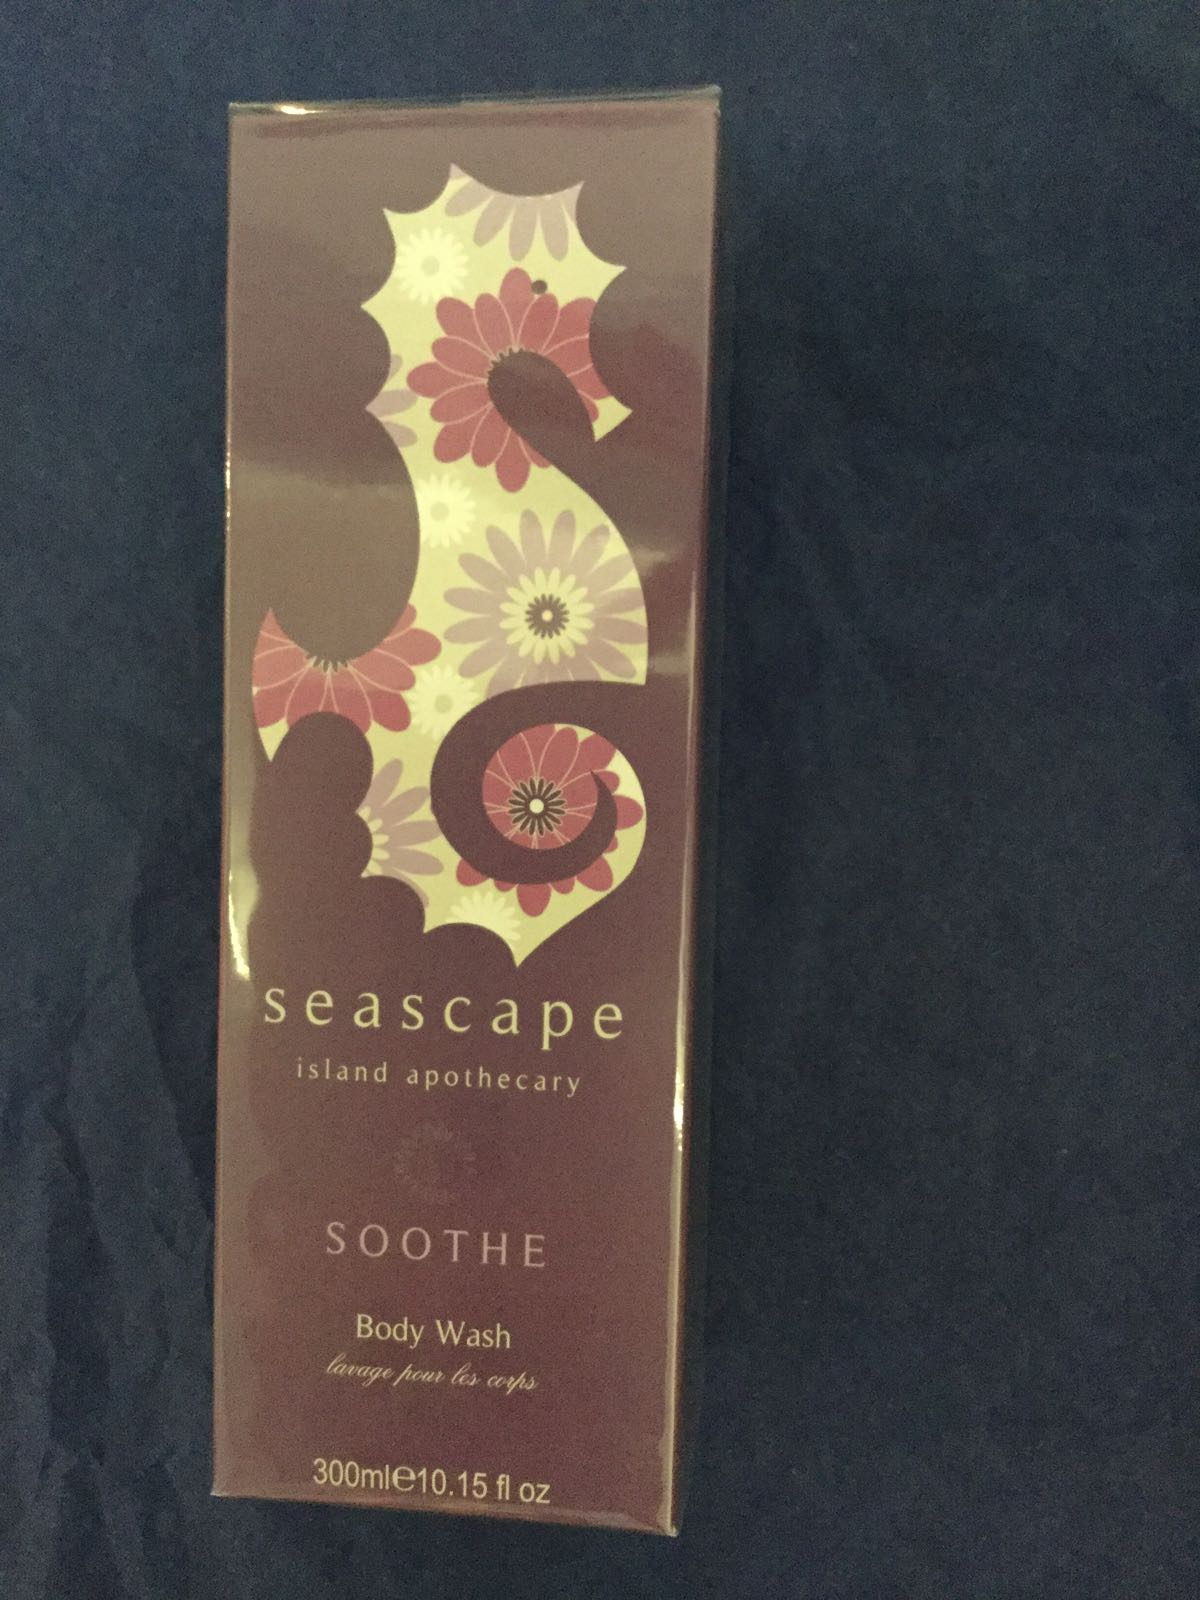 Seascape soothe body wash